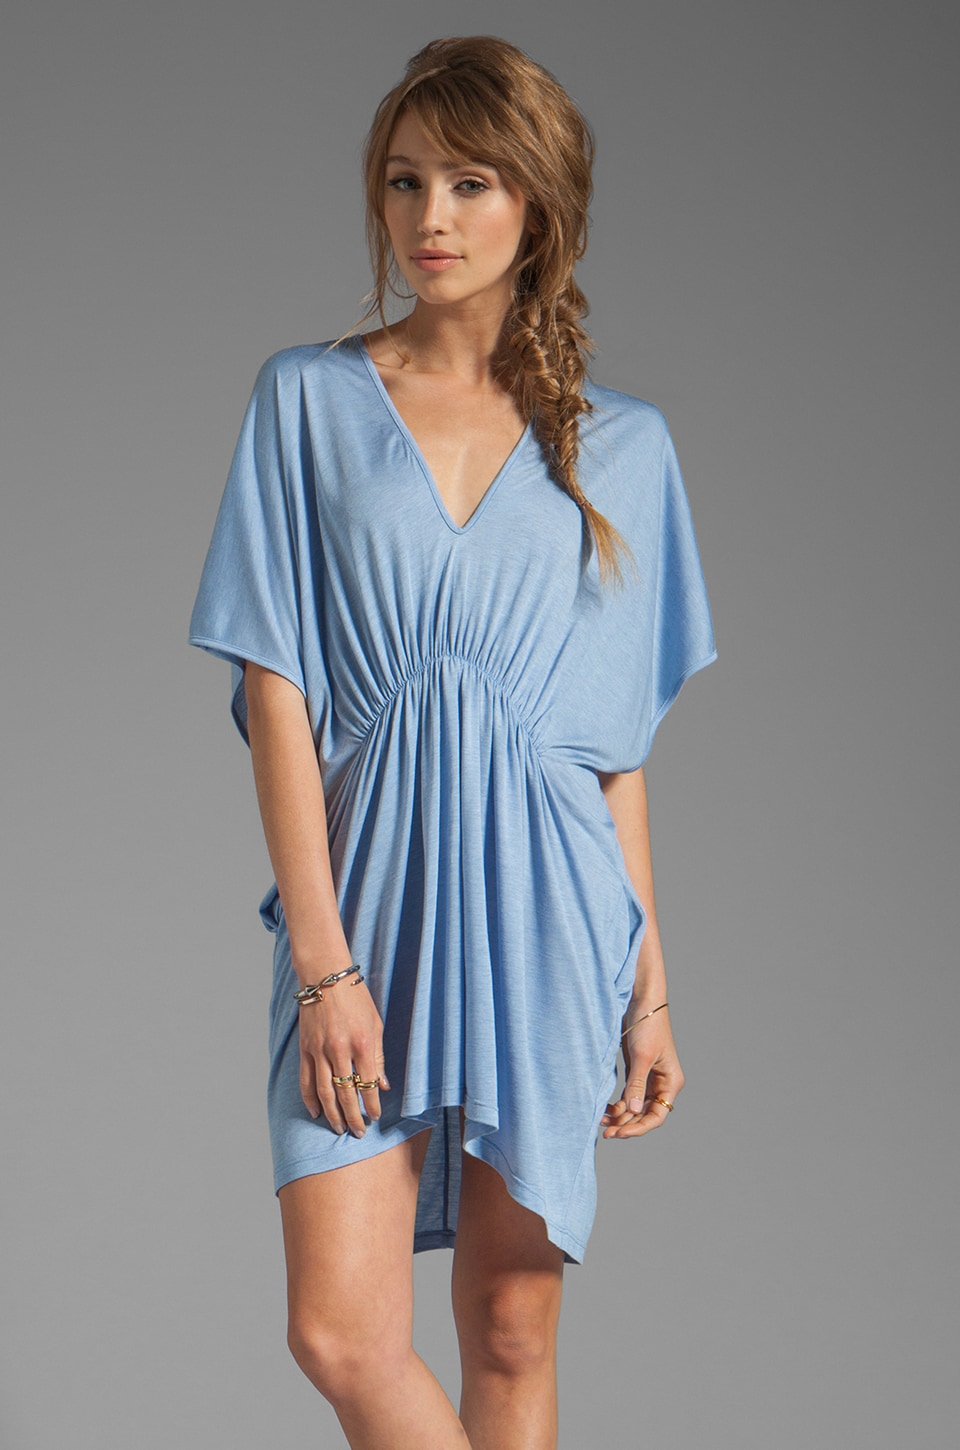 Riller & Fount Missy Tunic Dress in Pacifico